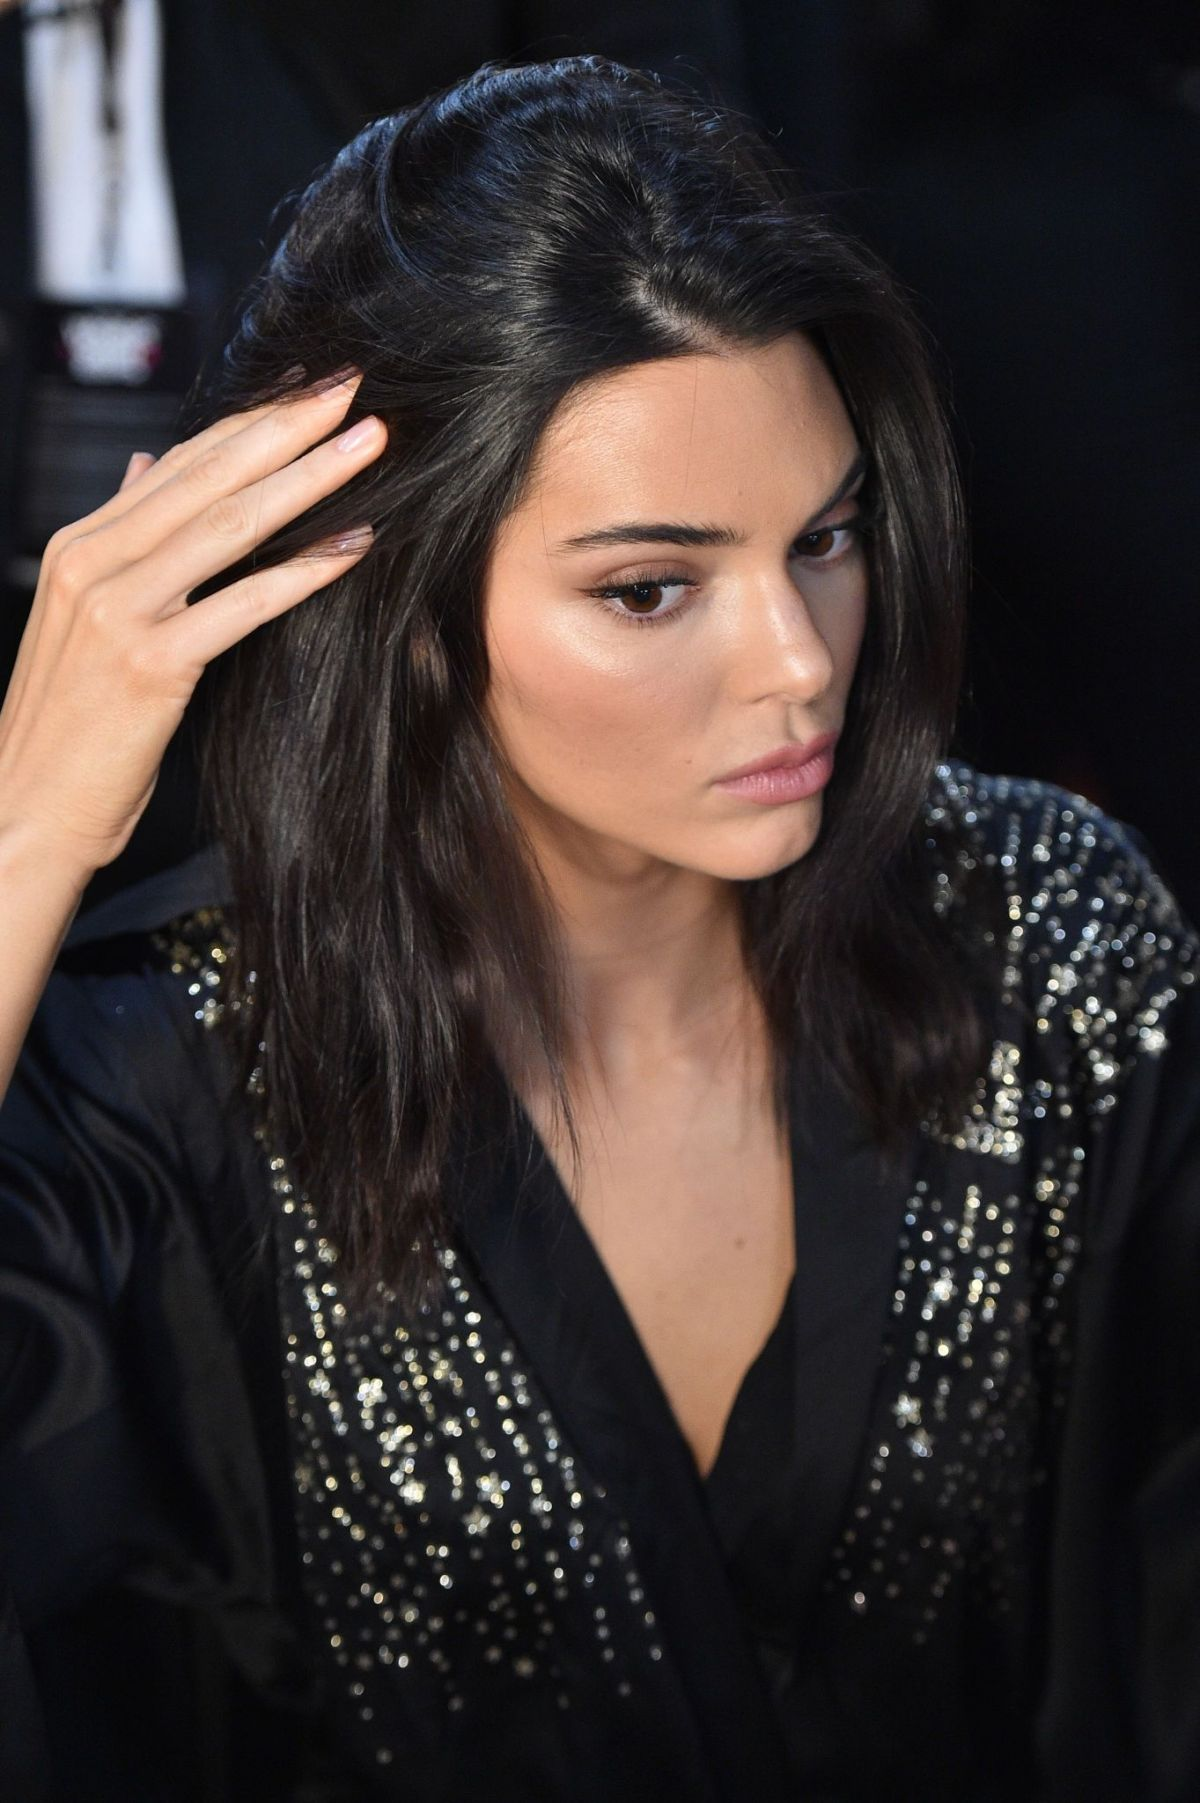 Kendall Jenner On The Backstage Of Victoria S Secret Fashion Show In